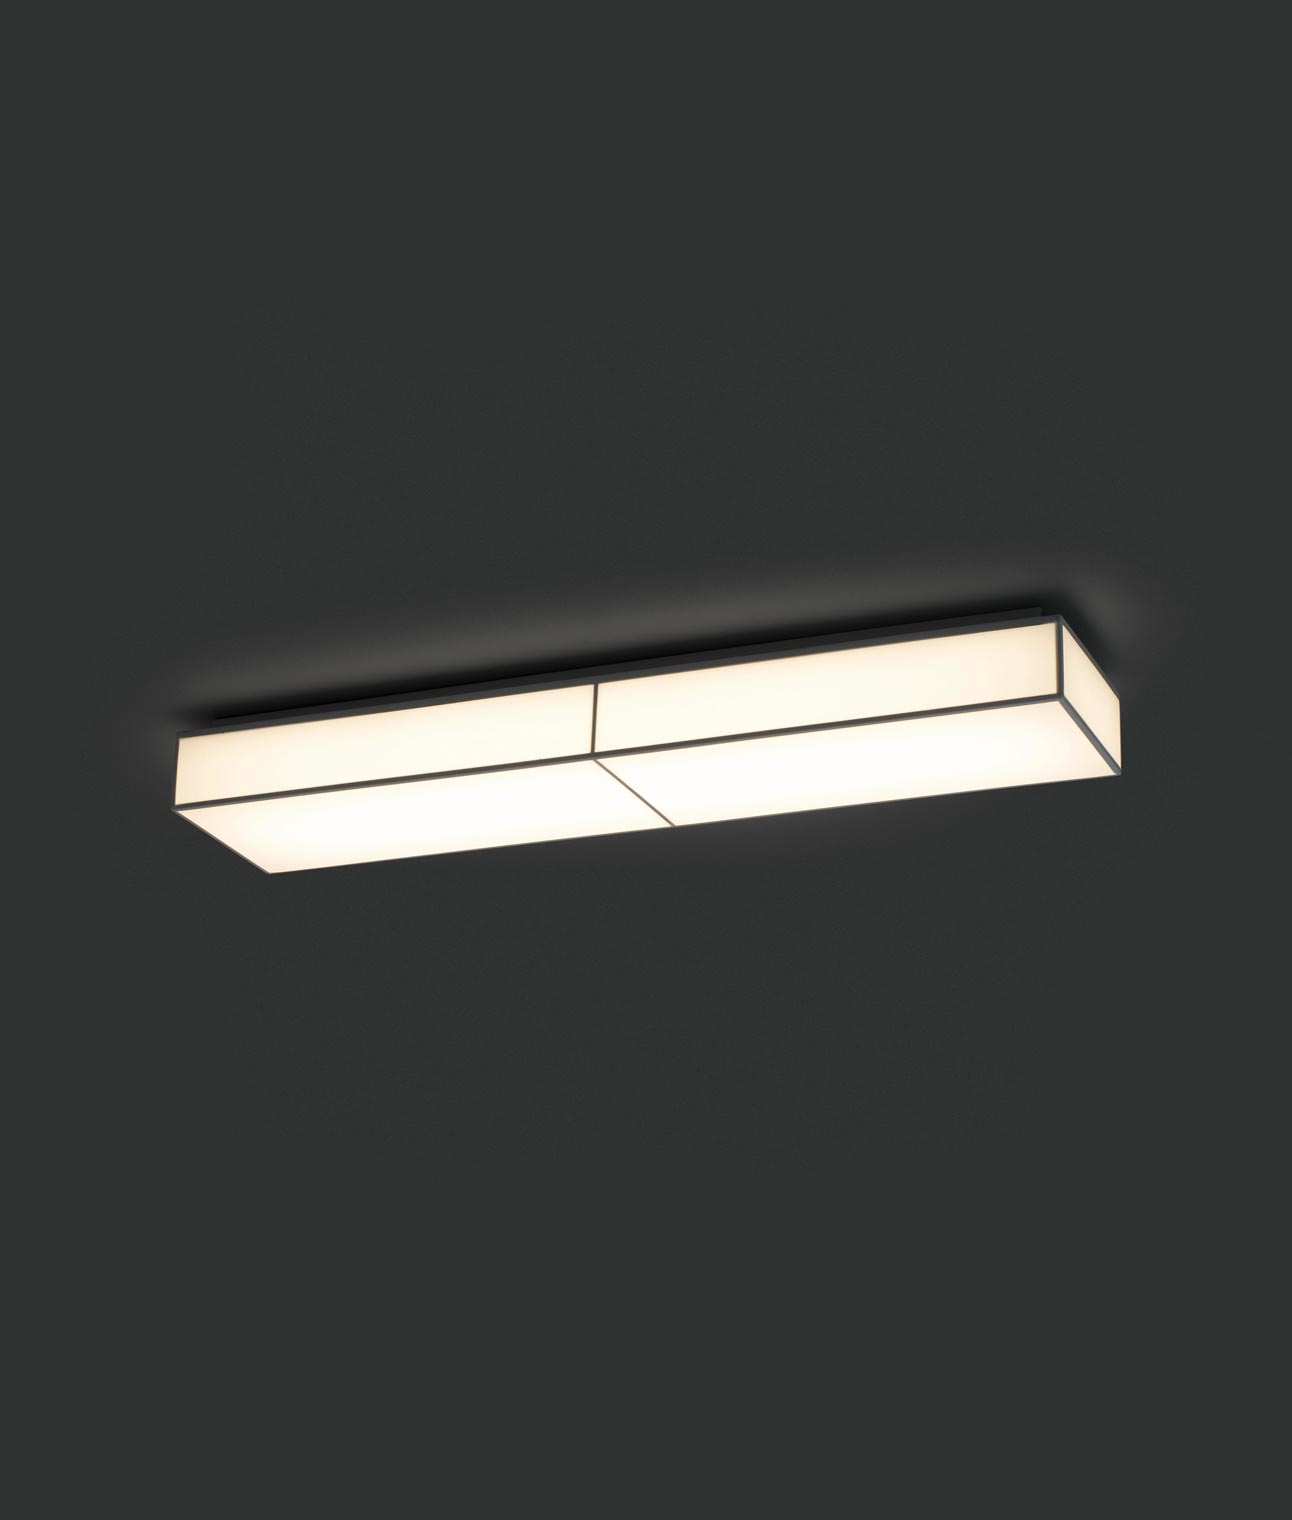 Plaf n de techo color blanco silk 2 led la casa de la - Lamparas de plafon techo ...